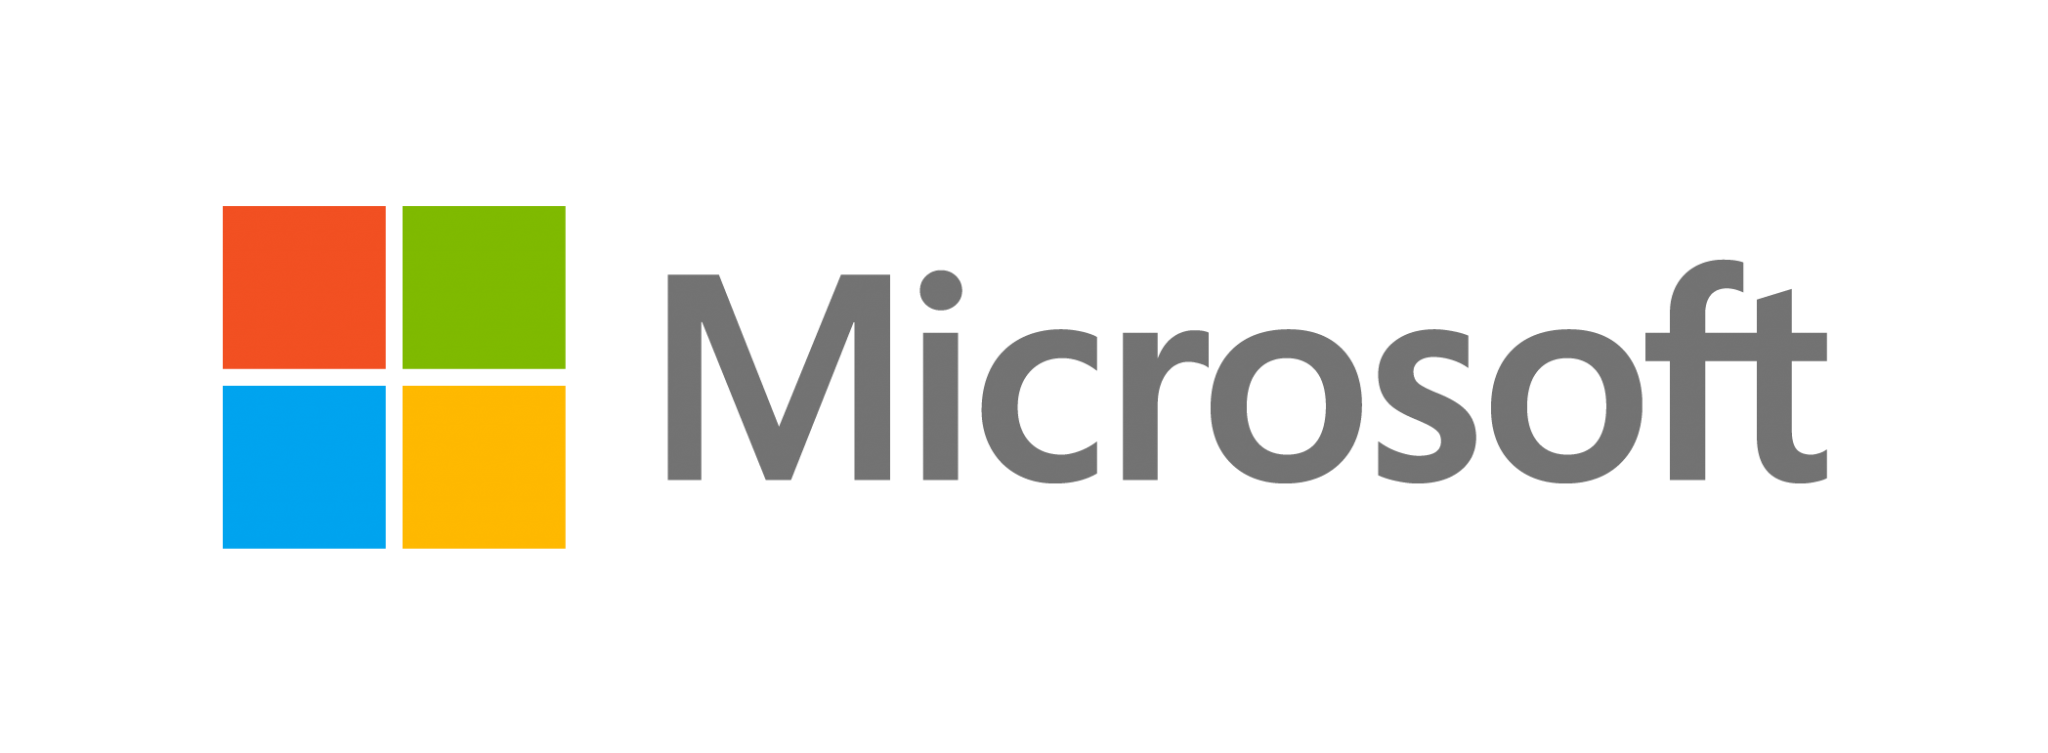 Index of /wiki/images/thumb/8/80/Microsoft-Logo.png